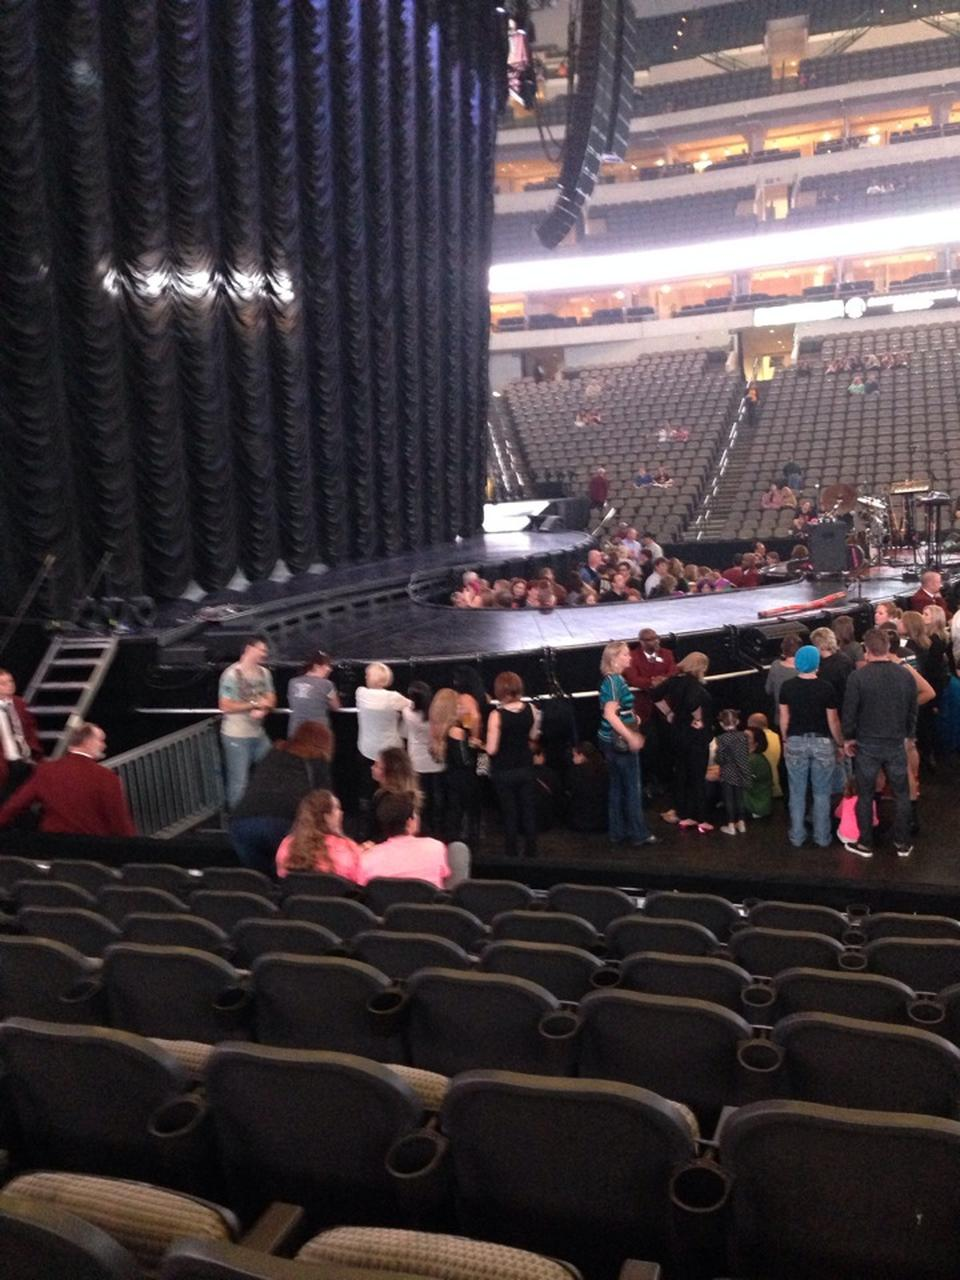 American Airlines Center Section 120 Concert Seating